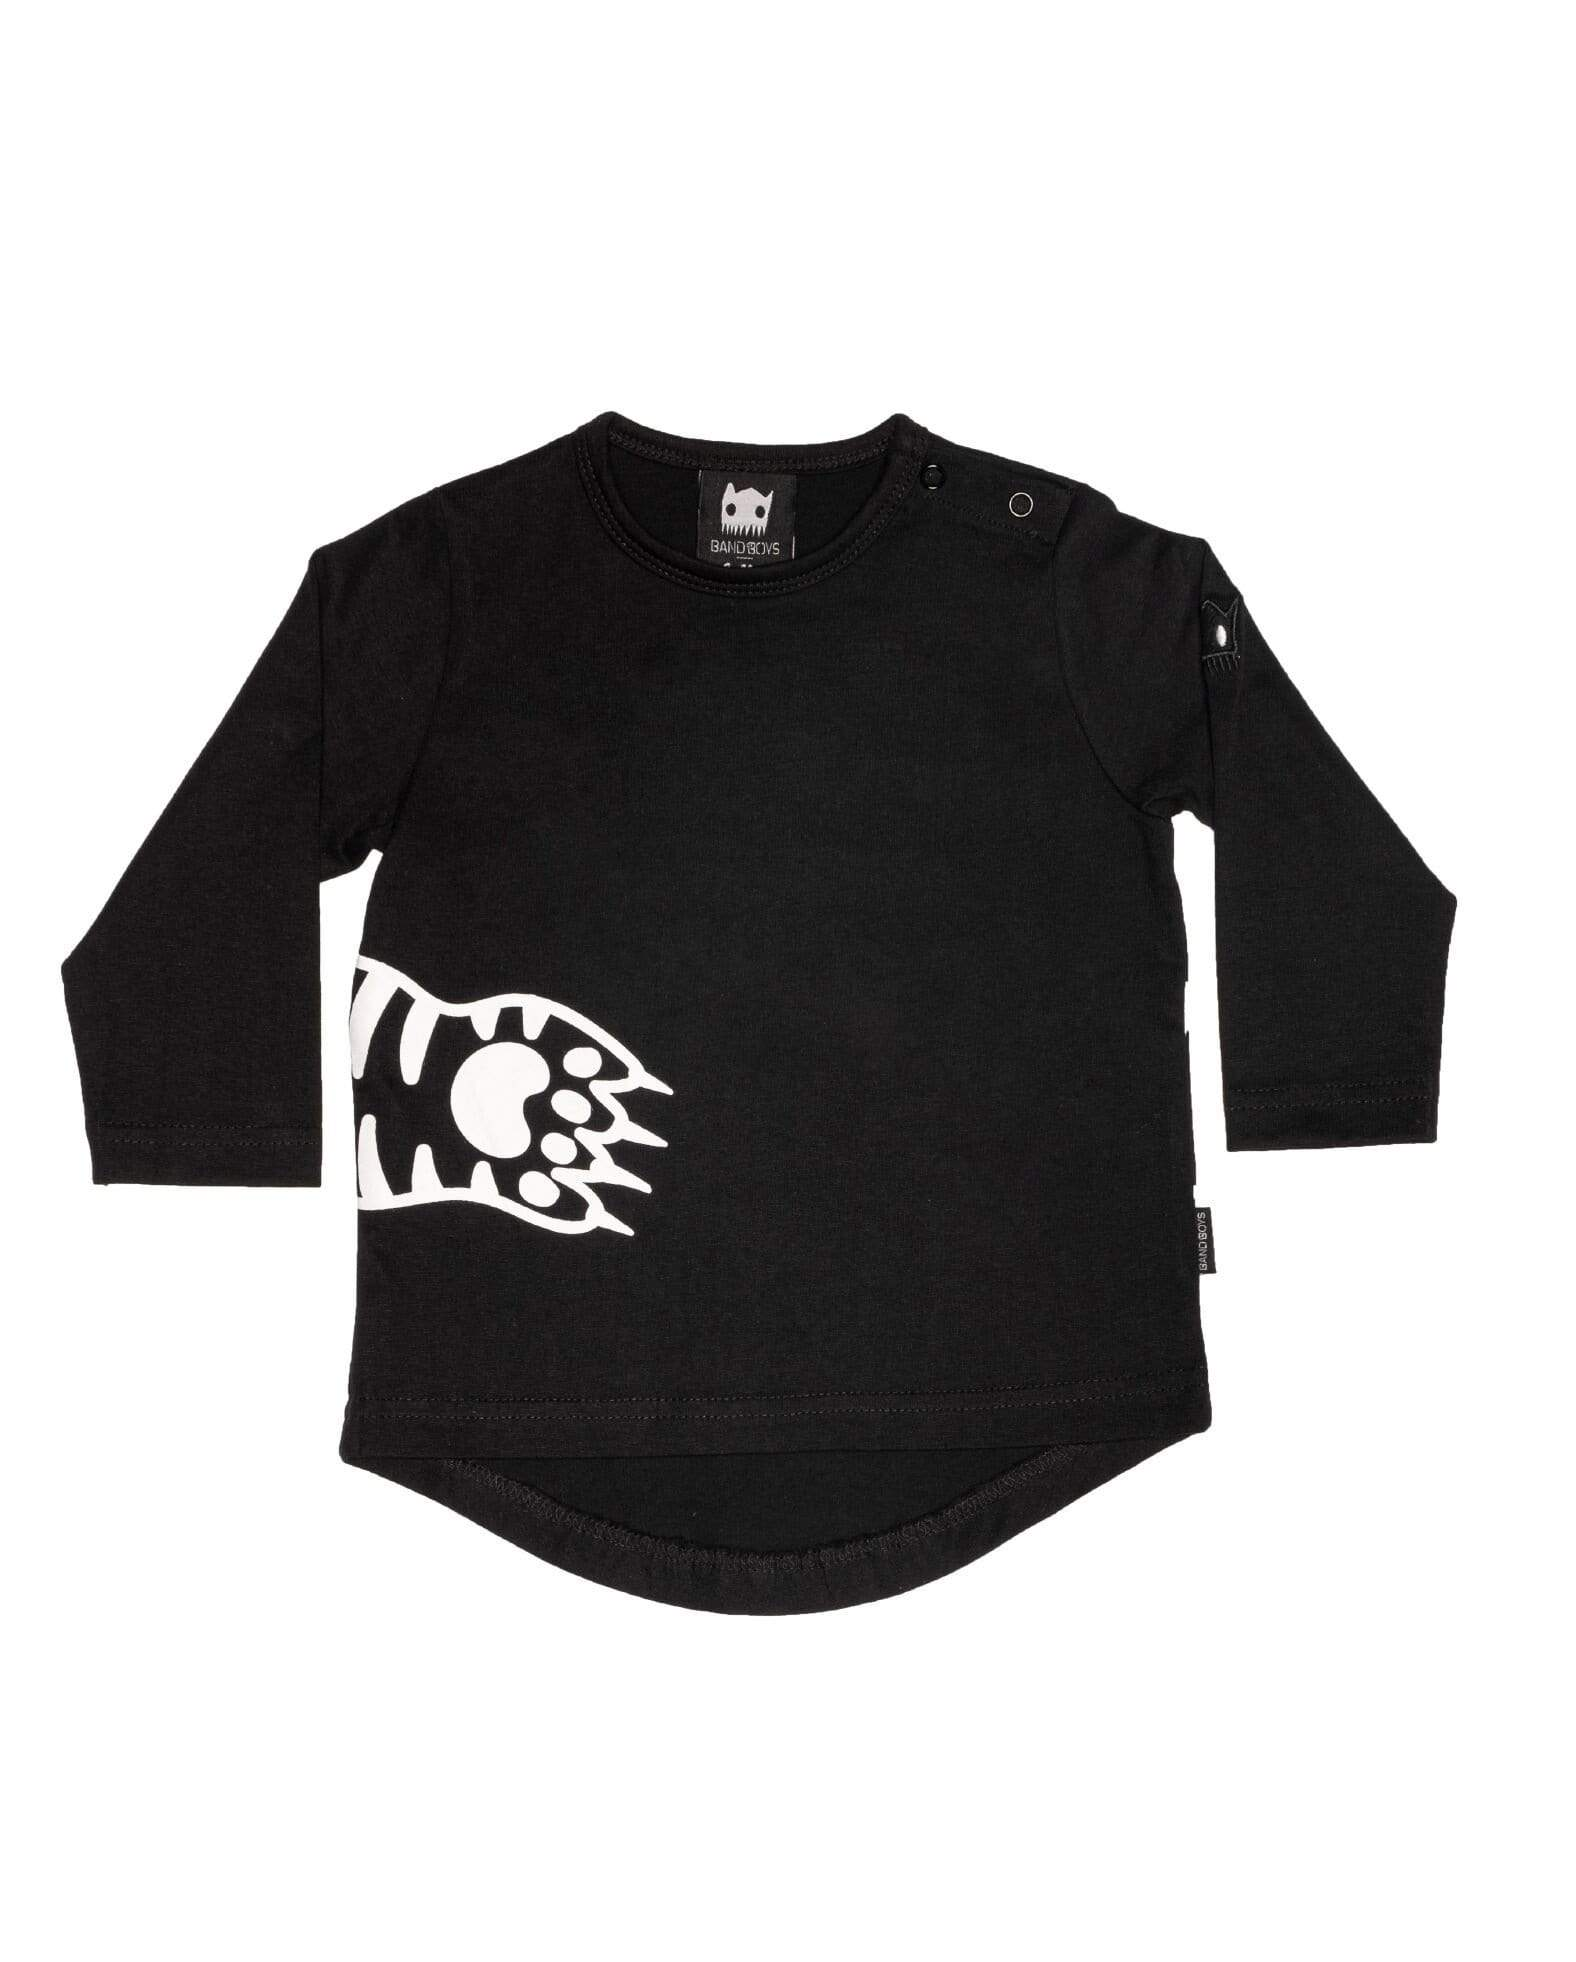 Band of boys T Shirt Organic Paws LS Tee - Black